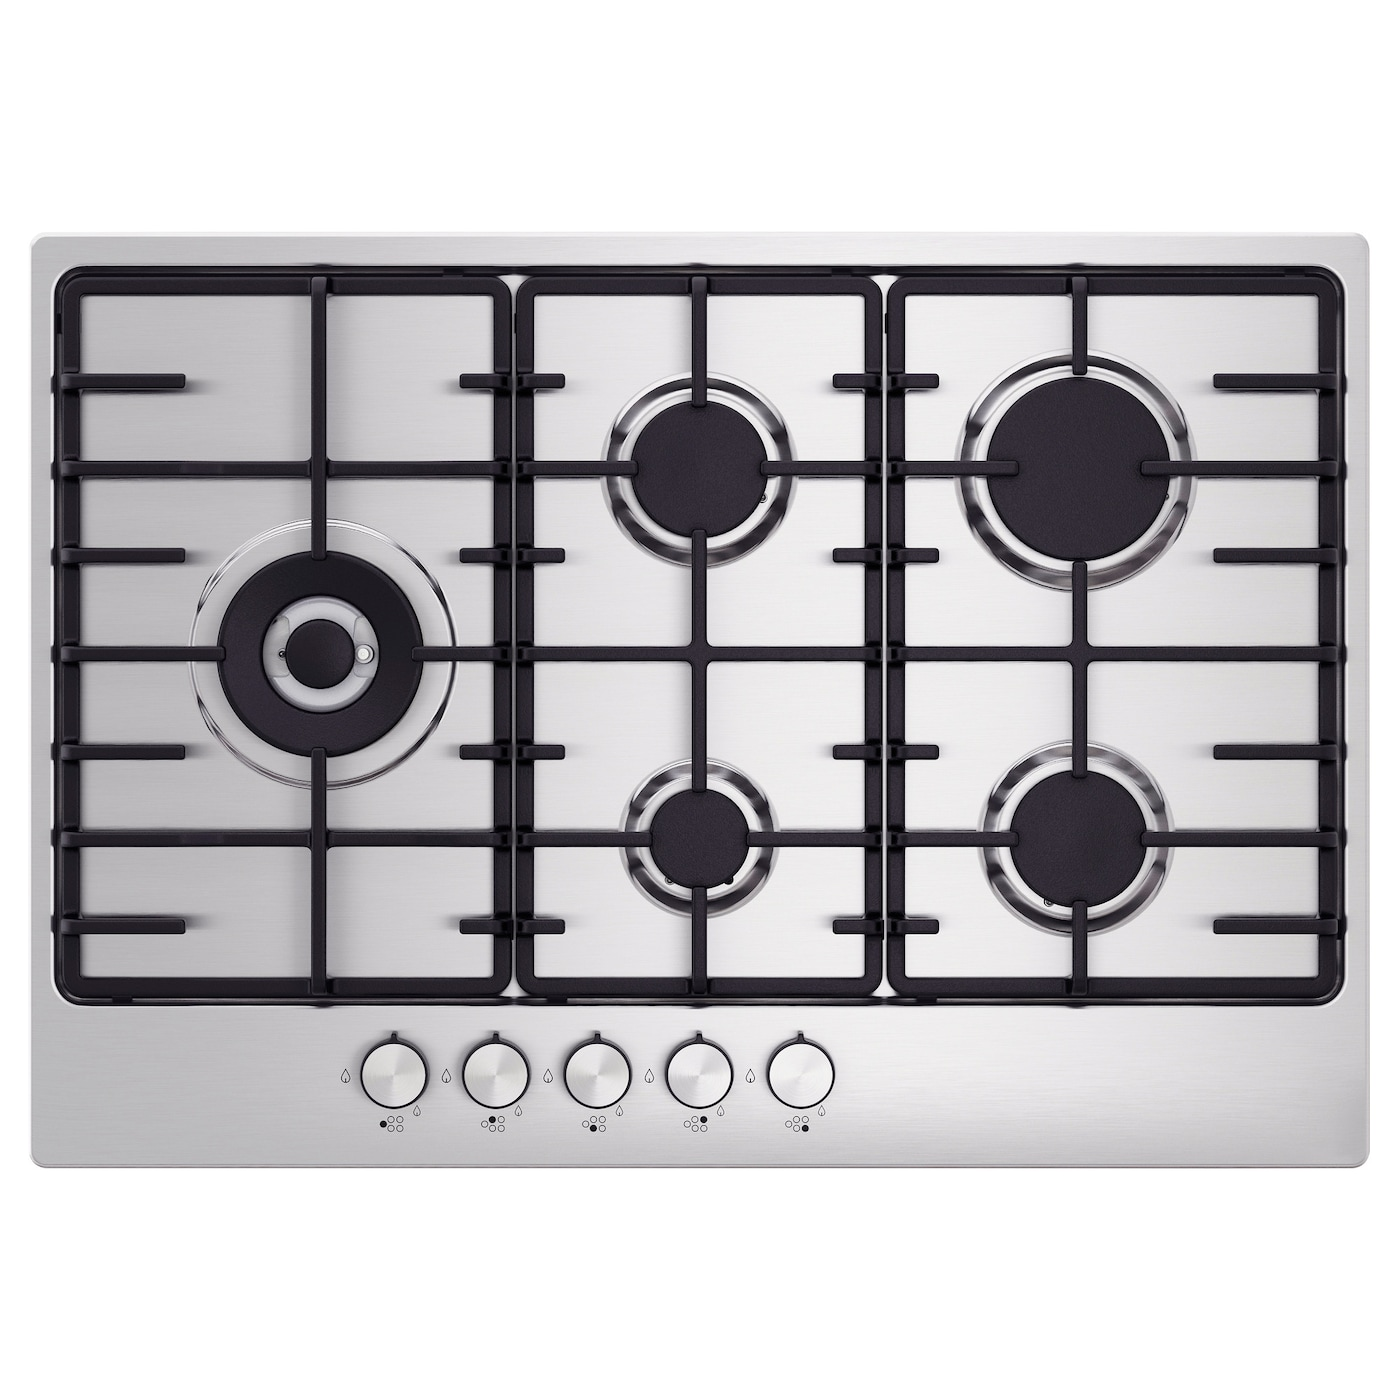 IKEA ELDSLÅGA gas hob 5 year guarantee. Read about the terms in the guarantee brochure.